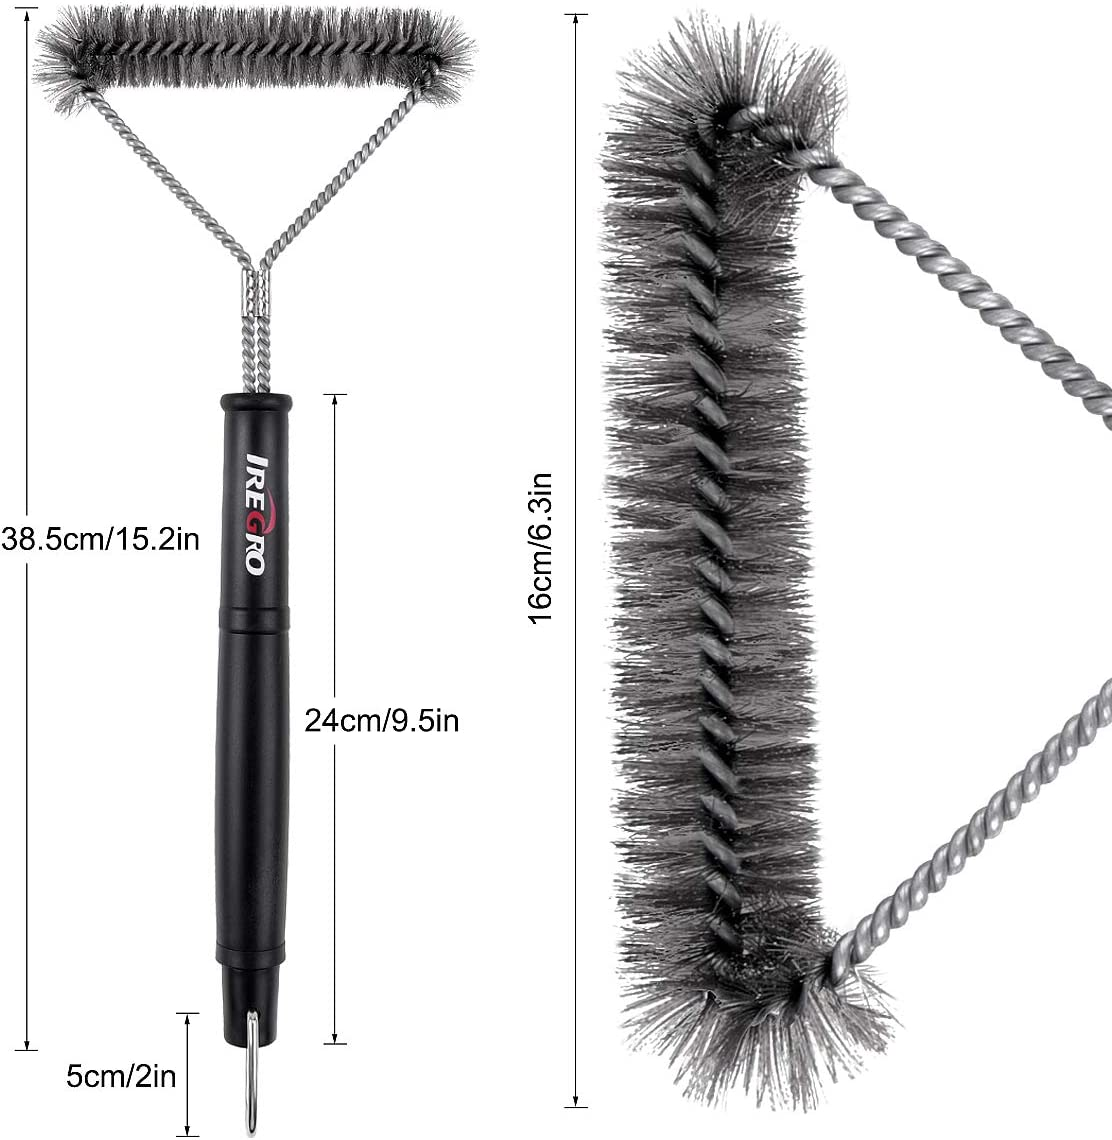 iRegro Grill Brush Three-Sided Stainless Steel Bristle BBQ Grill Brush Barbecue Accessories for Charcoal Gas Electric Grill /…